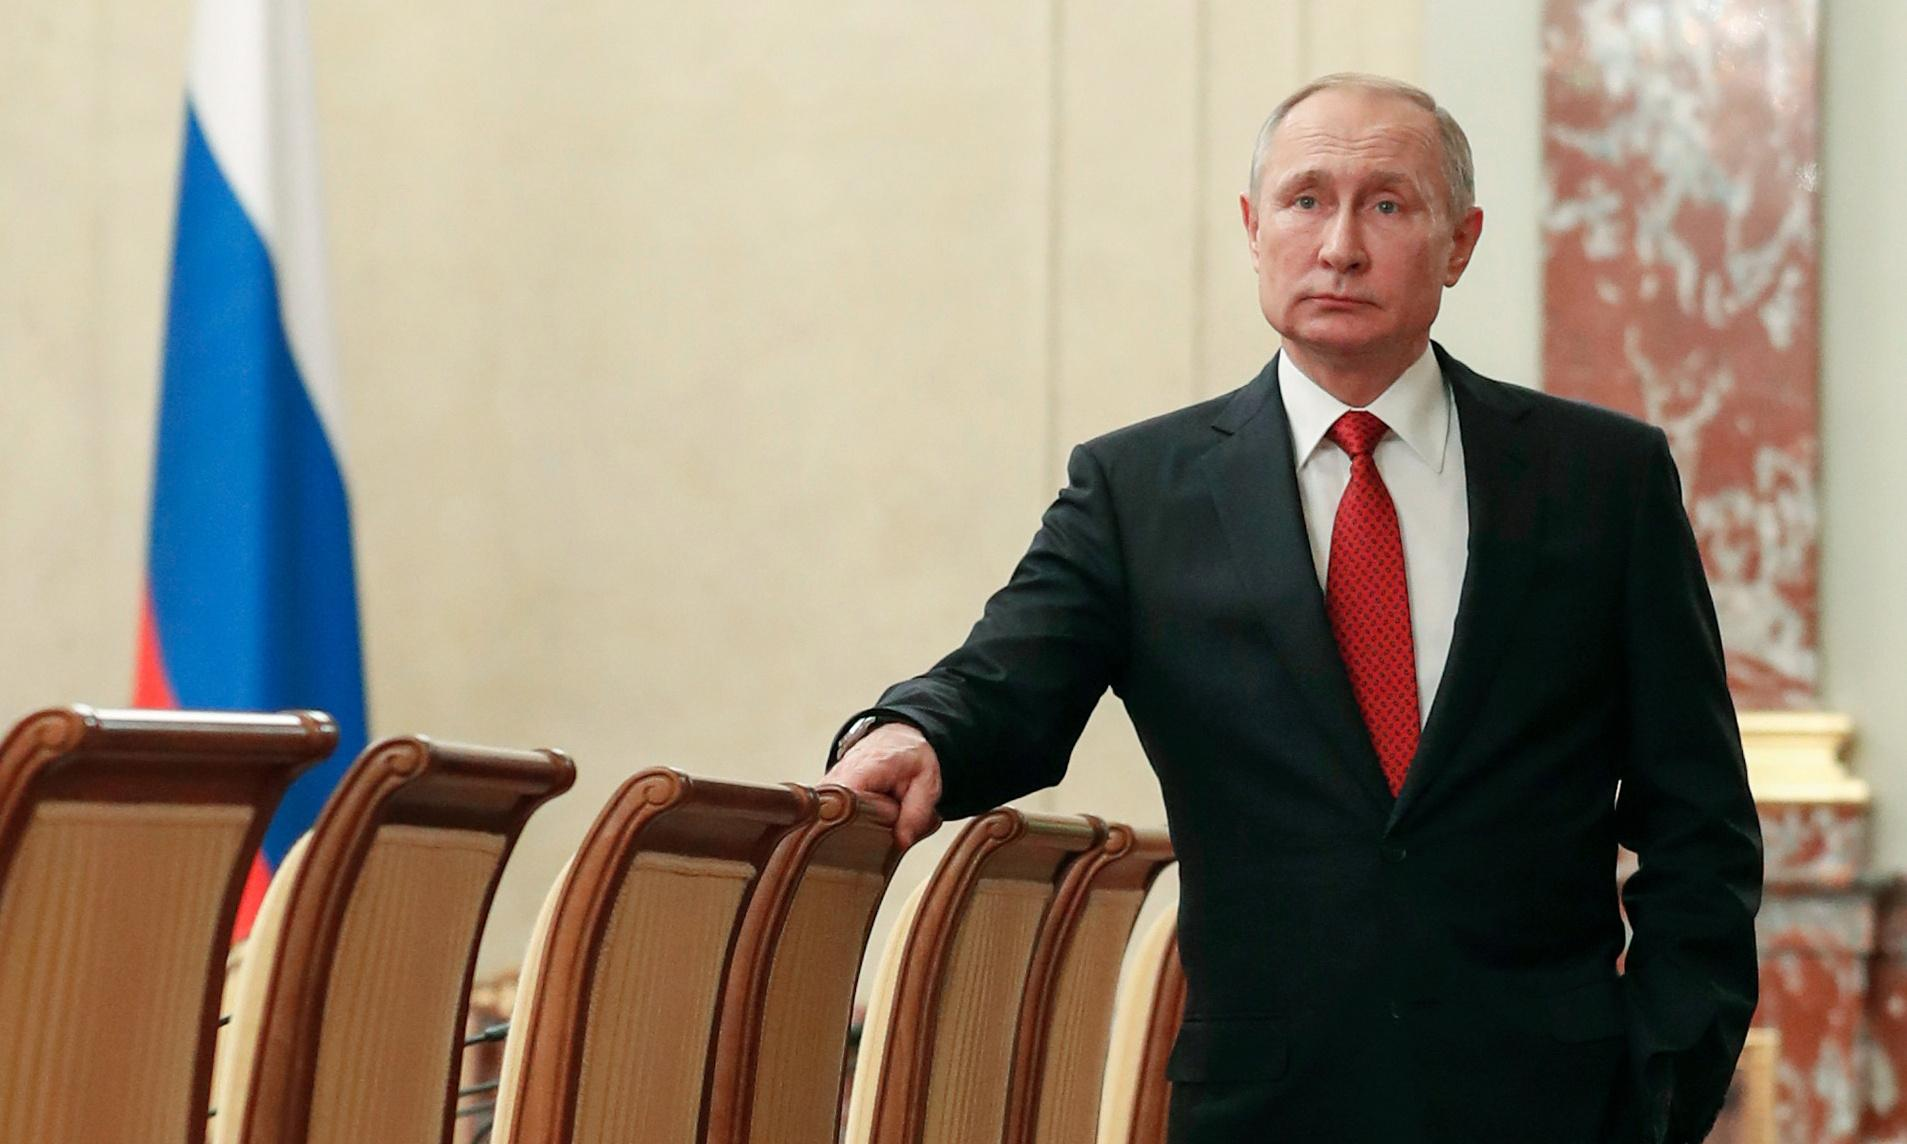 Vladimir Putin's naked power grab could have unexpected benefits